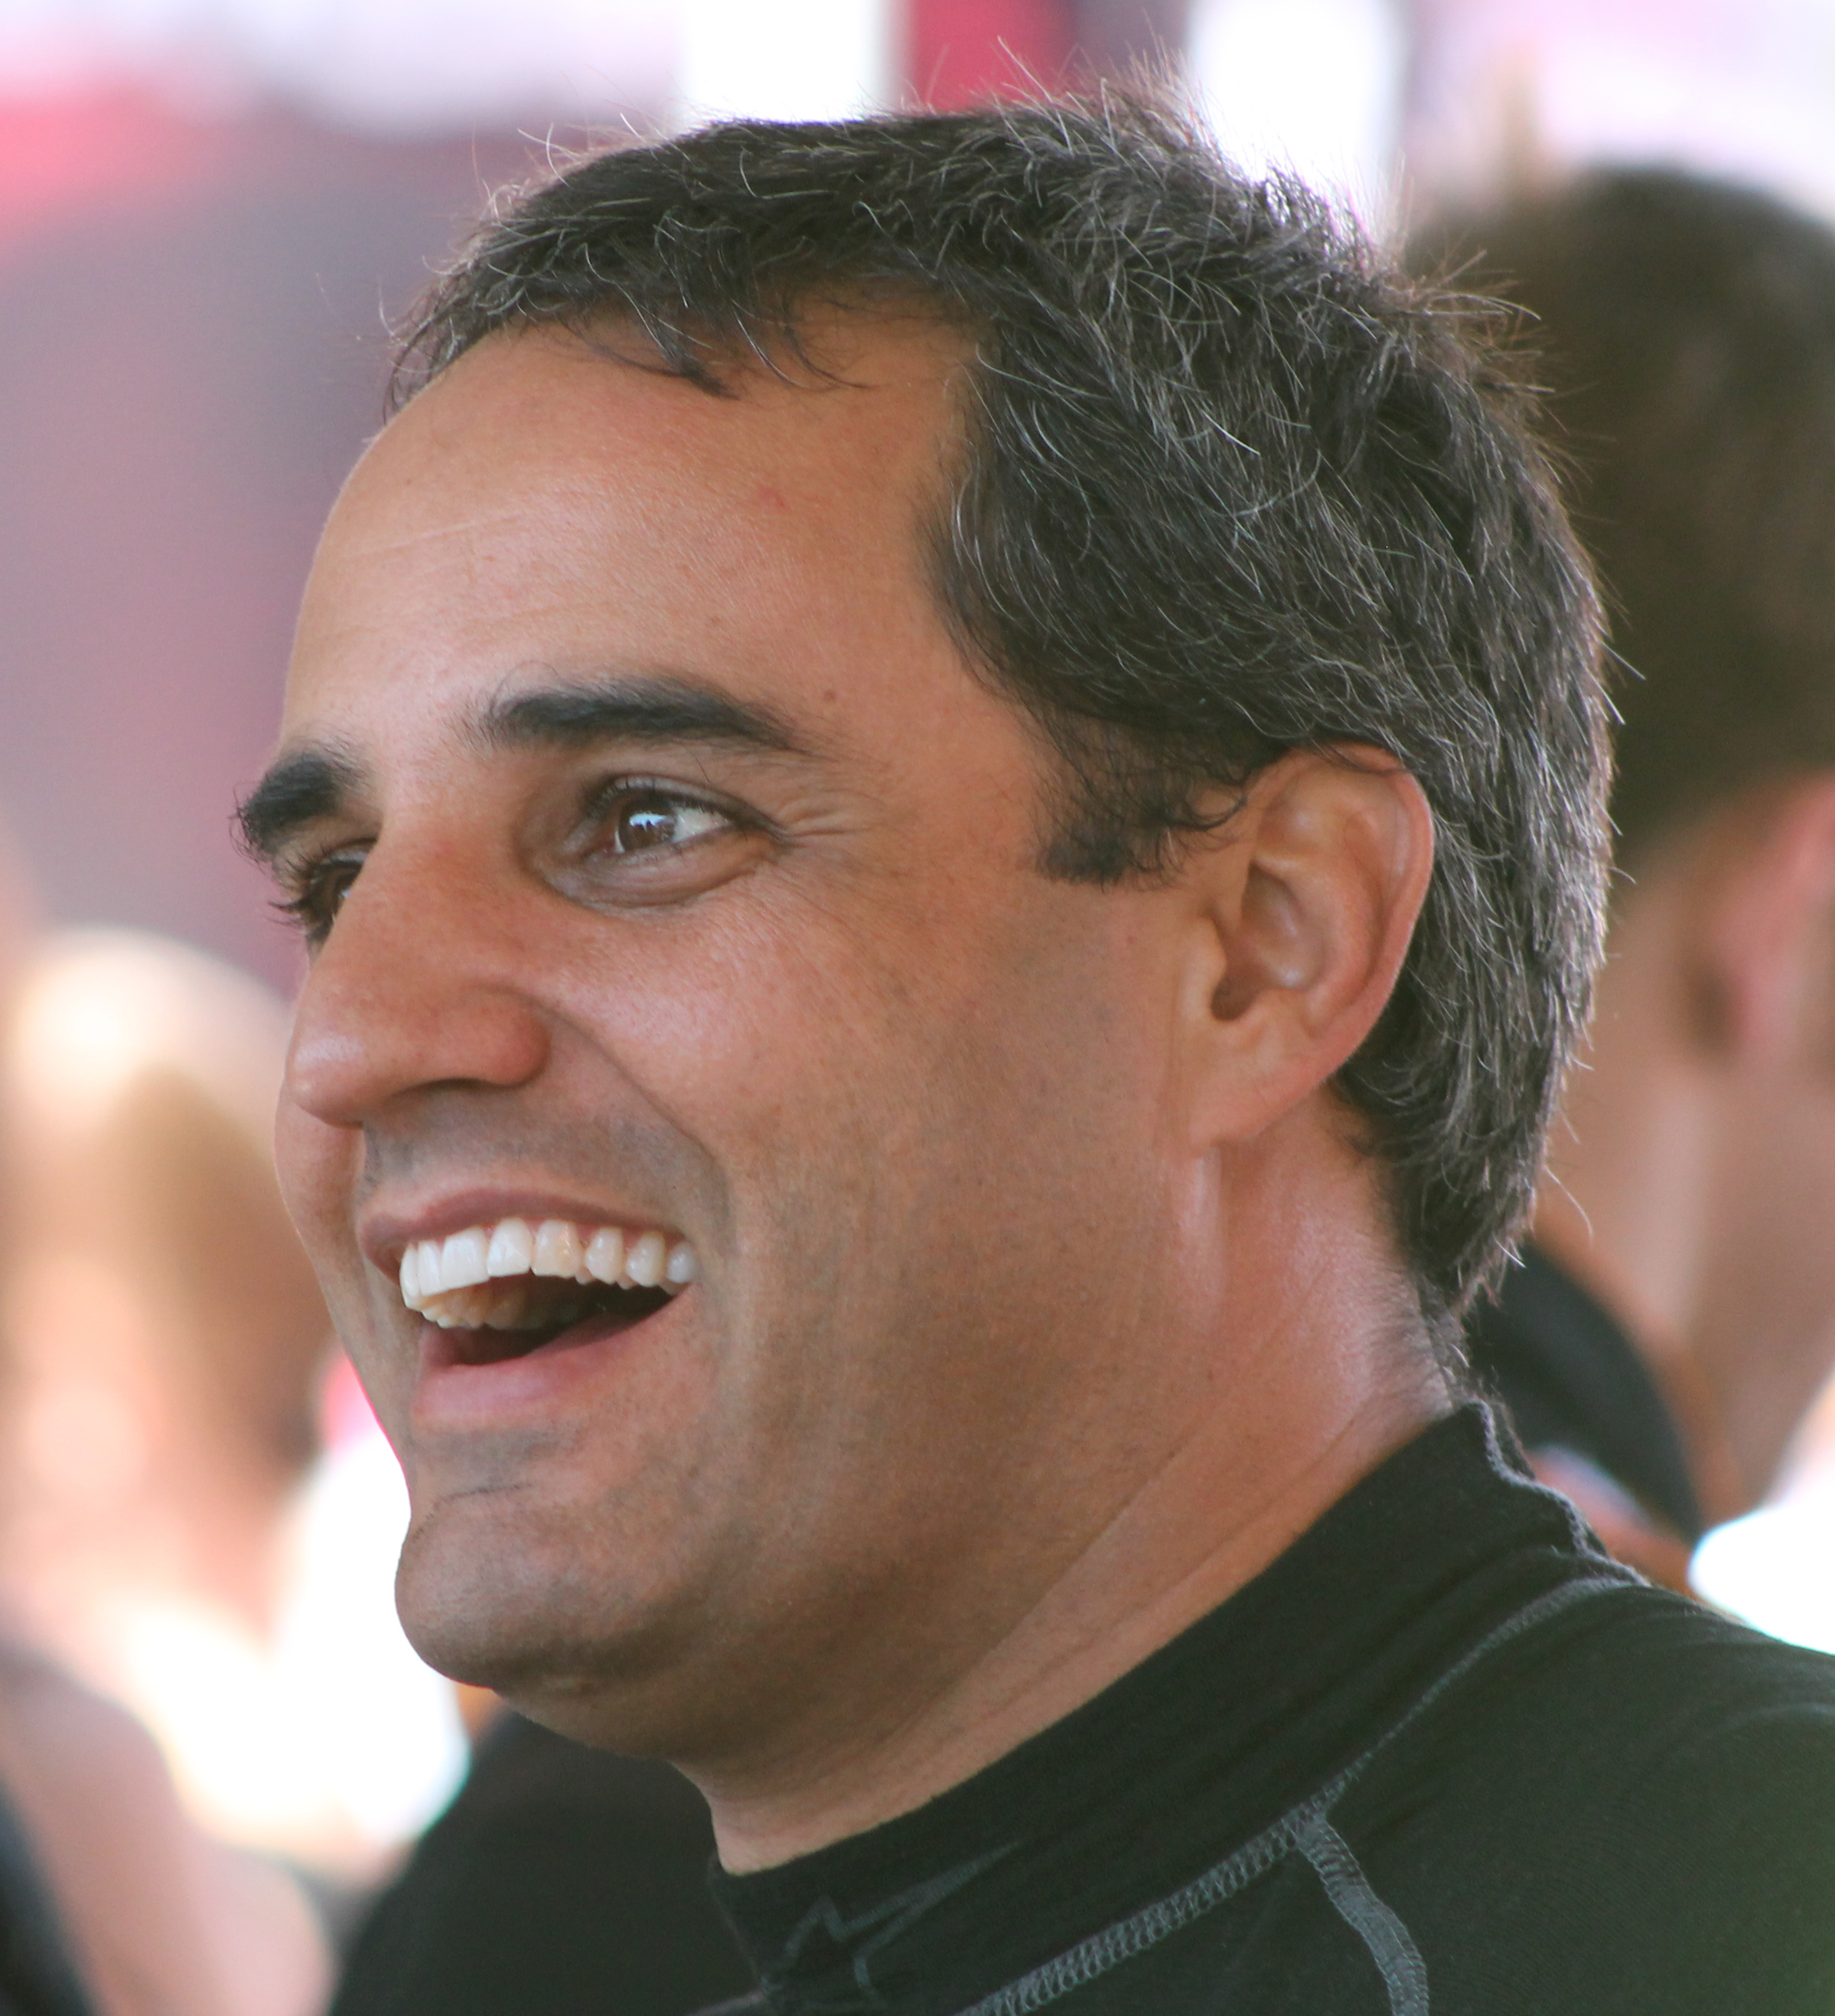 The 42-year old son of father Pablo Montoya and mother(?) Juan Pablo Montoya in 2018 photo. Juan Pablo Montoya earned a  million dollar salary - leaving the net worth at 18 million in 2018